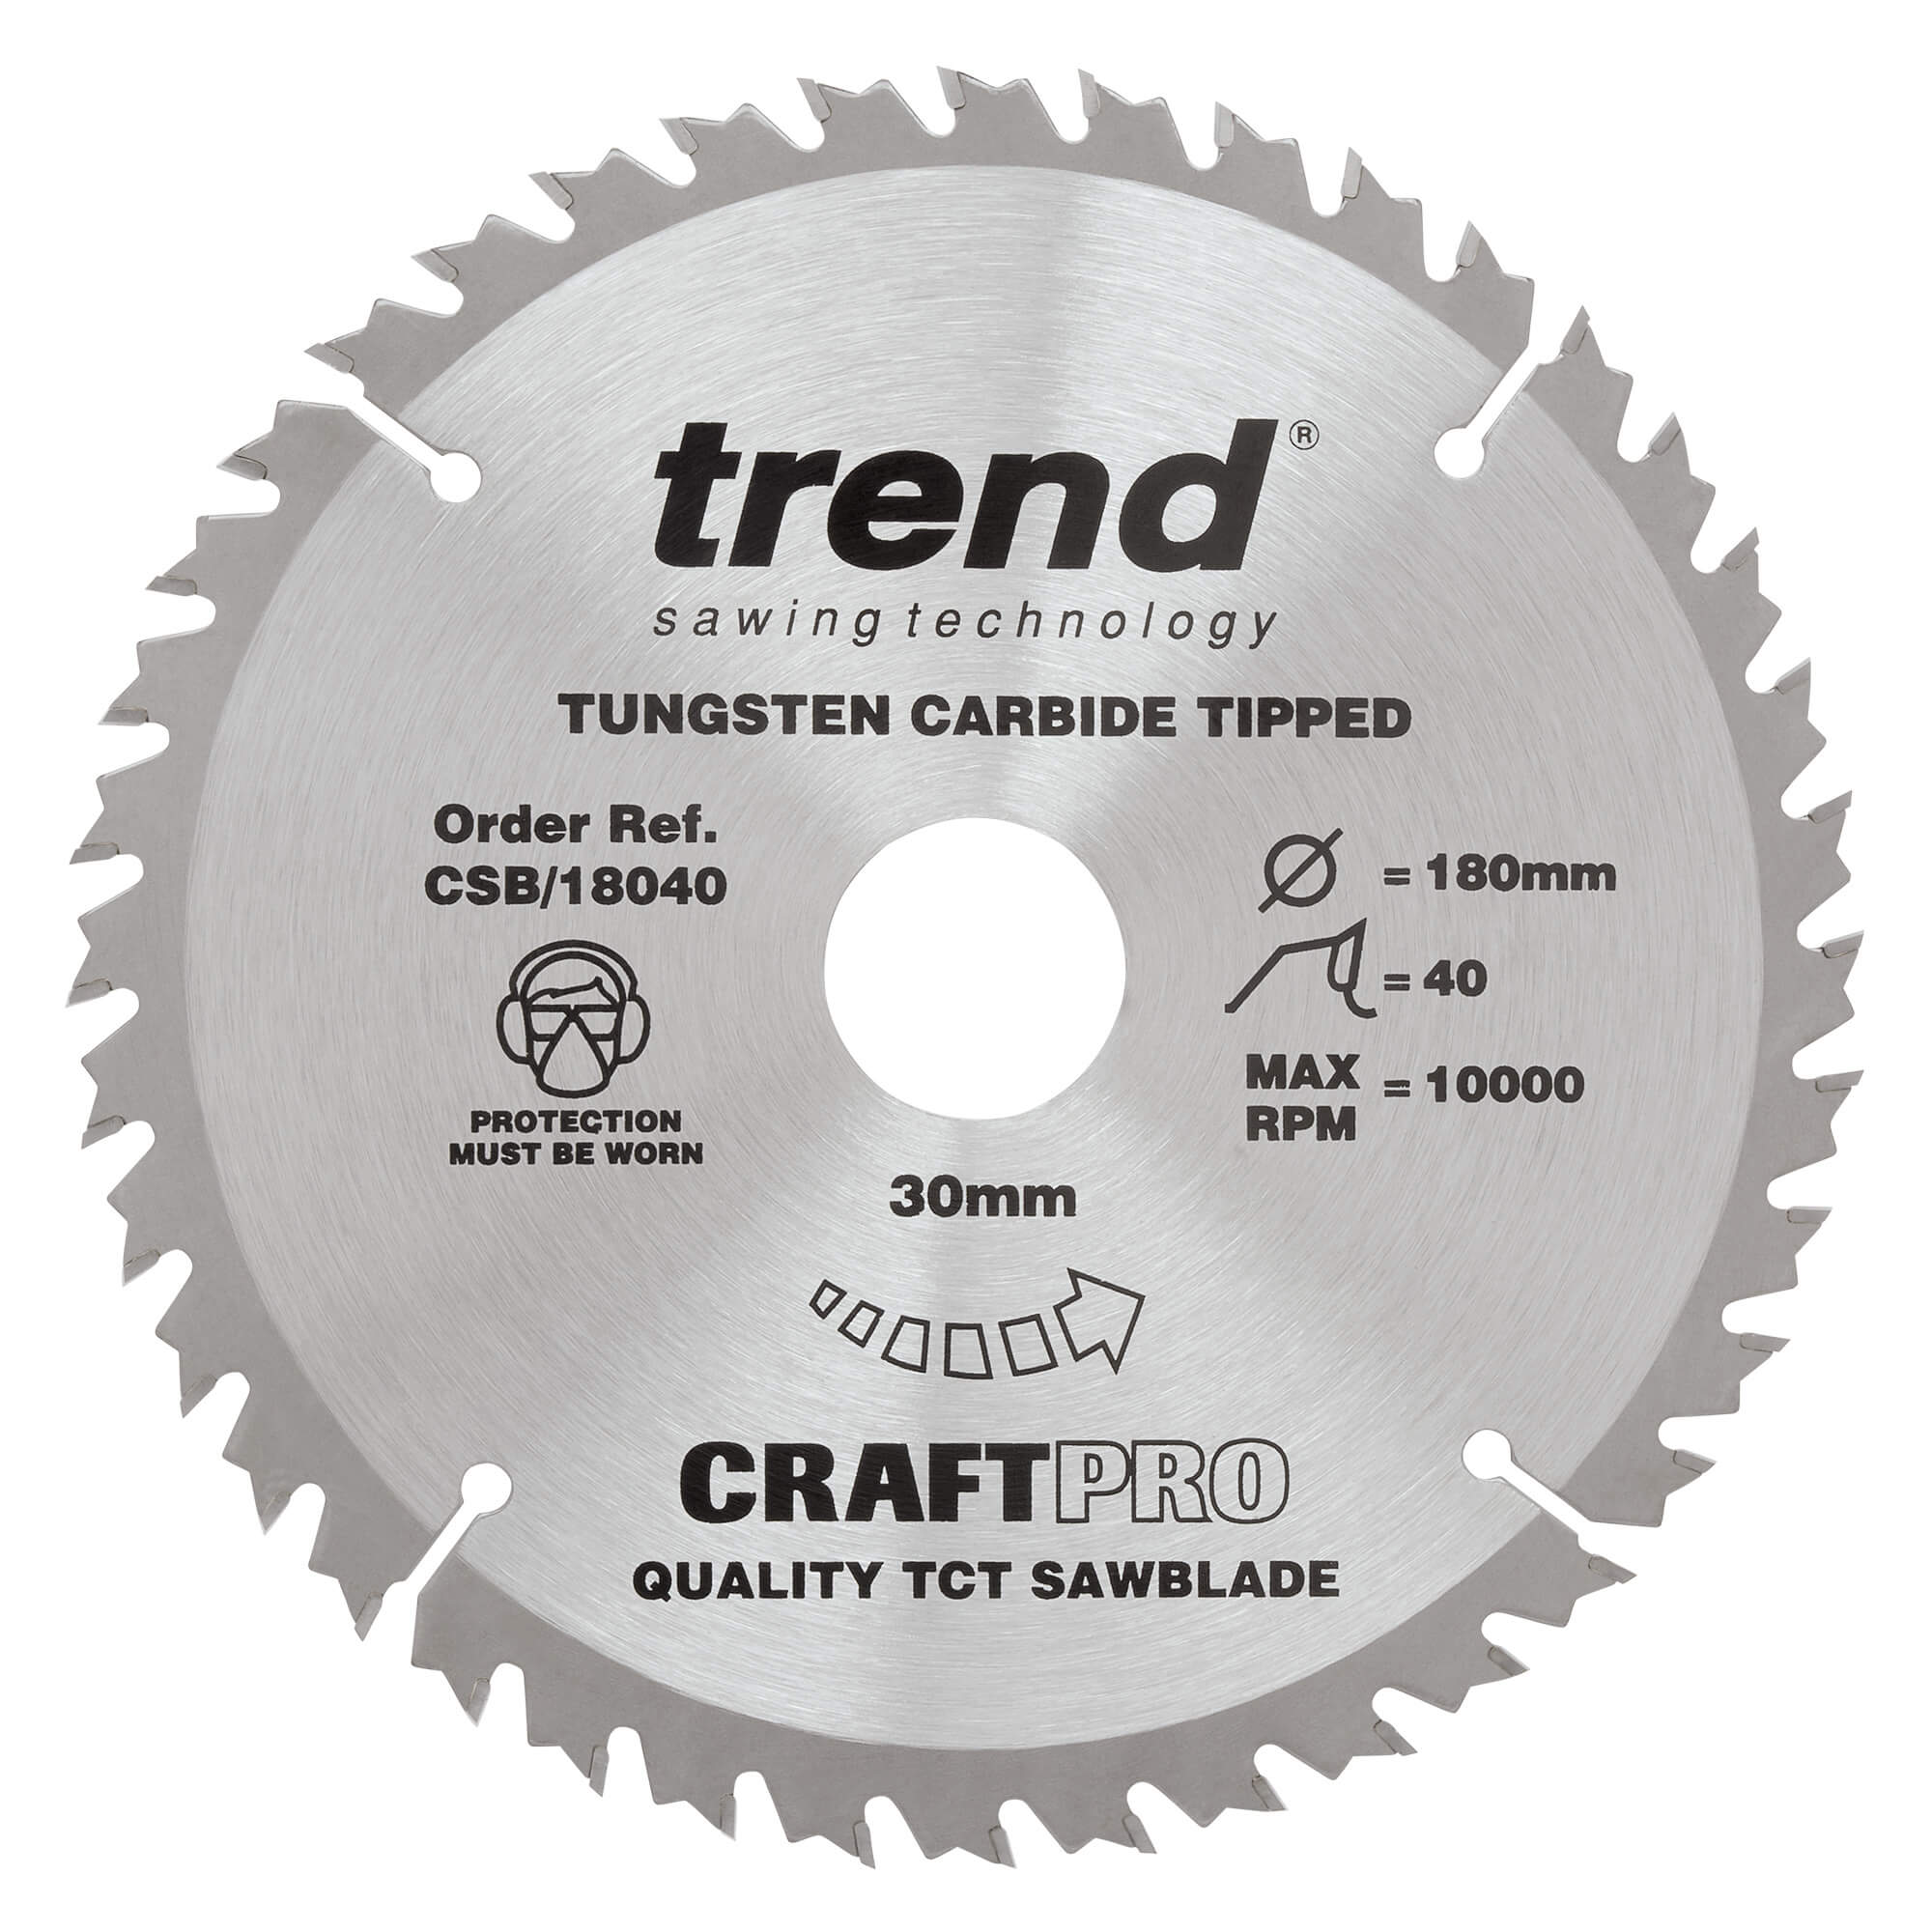 Image of Trend CRAFTPRO Wood Cutting Saw Blade 180mm 30T 30mm